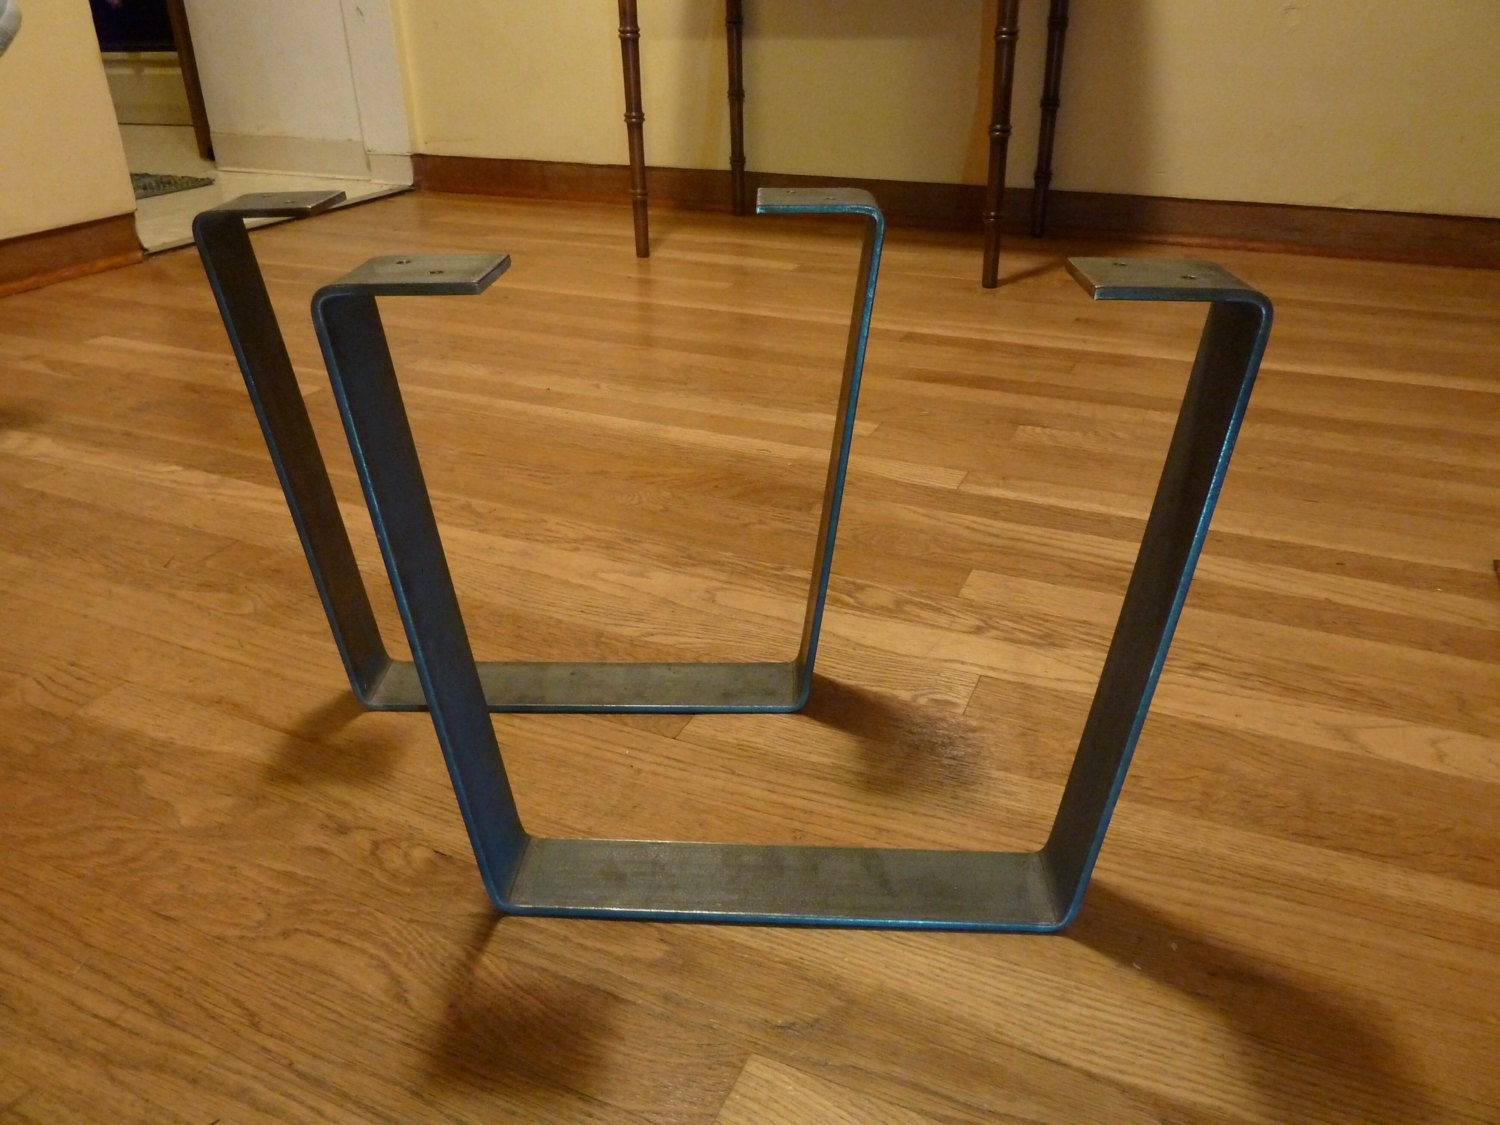 Metal Coffee Table Legs 2 5 In Steel Flat Bar Trapezoid